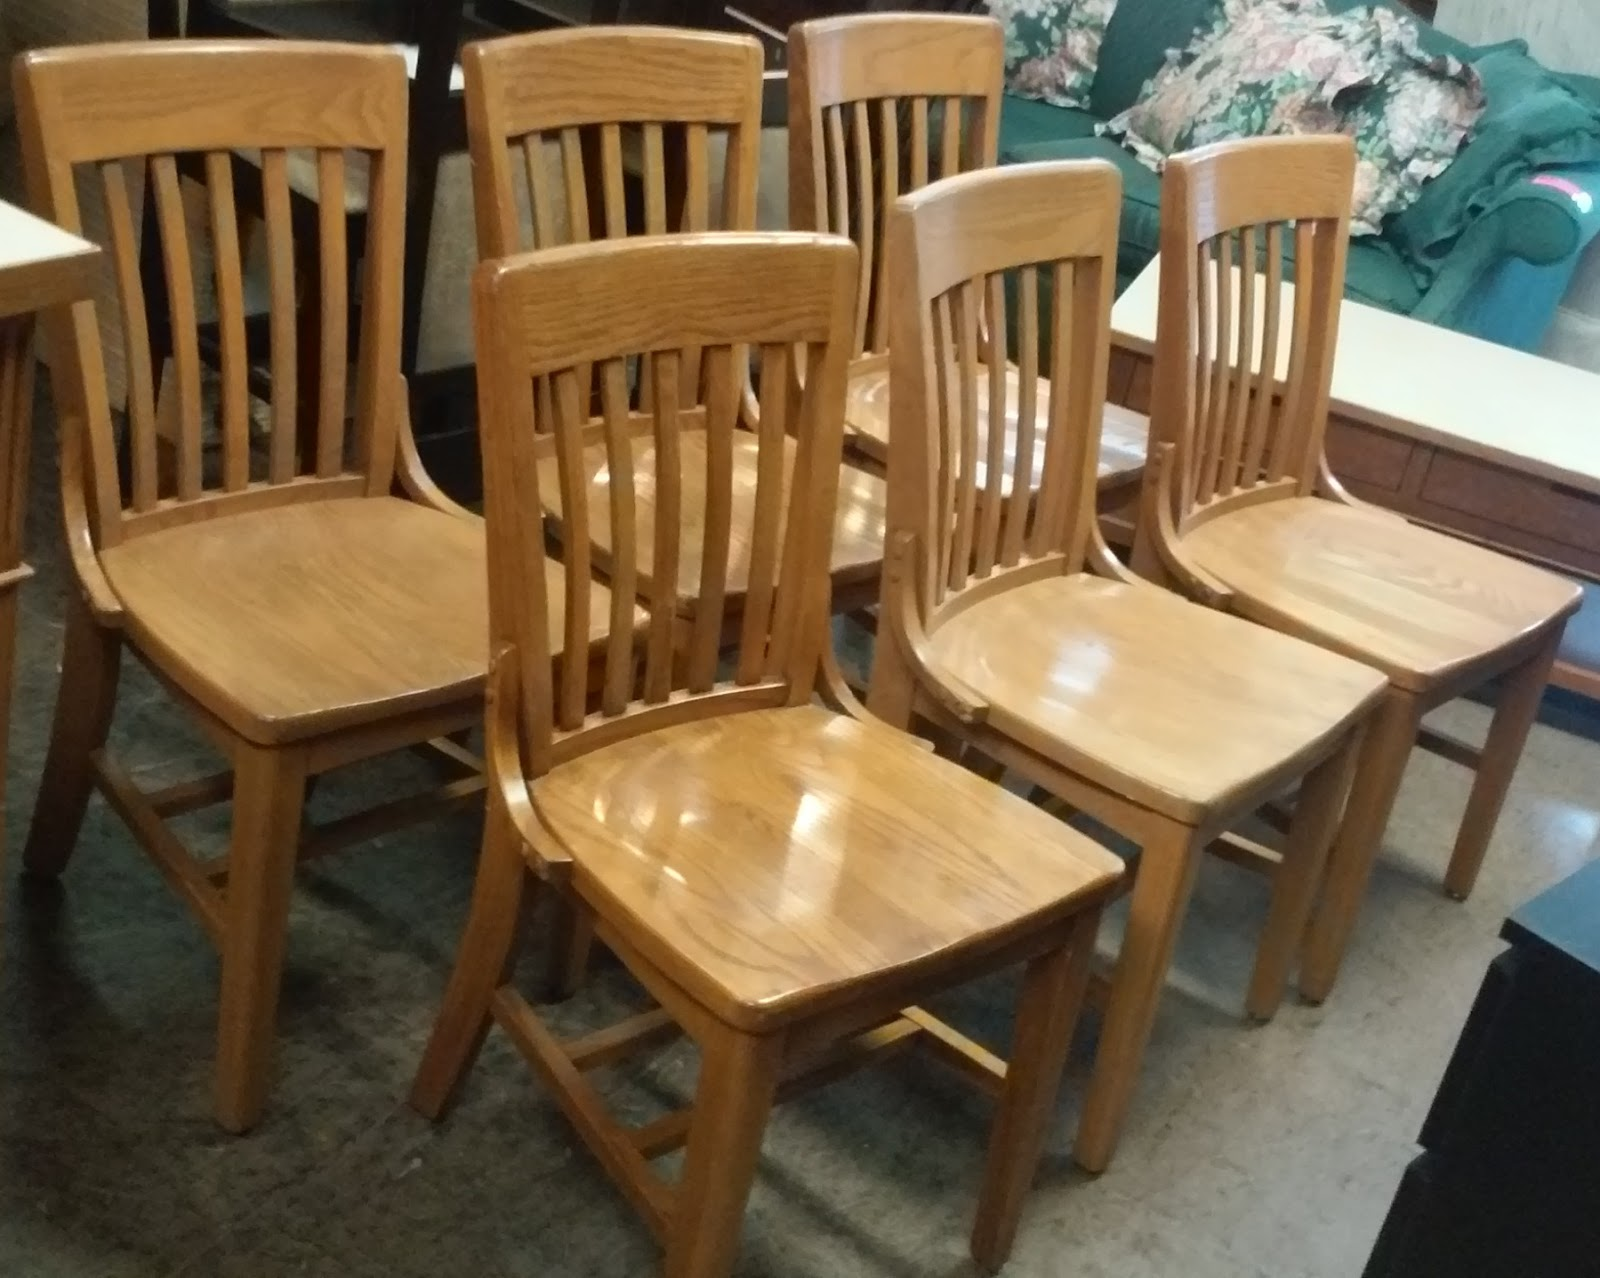 uhuru furniture collectibles sold mission oak dining chairs 80